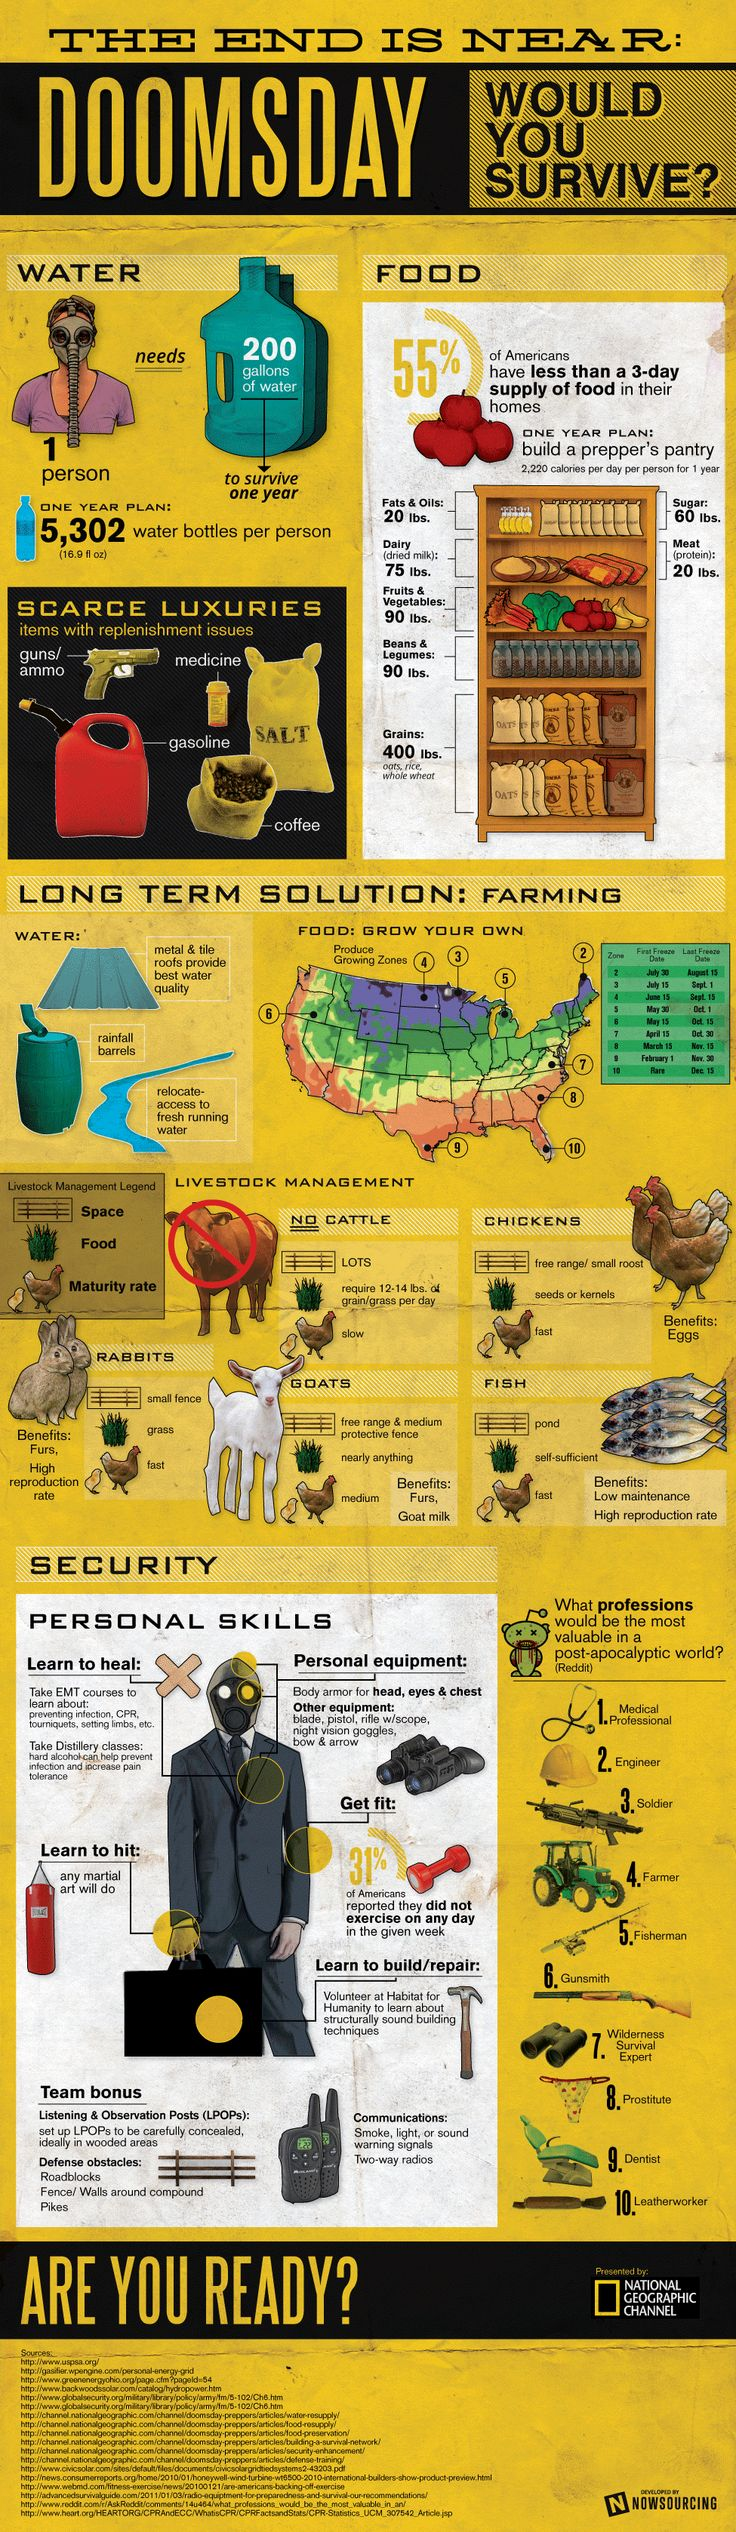 Fifty-five percent of American pantries are only stocked with enough food for three days. Those families are not likely to survive very long in the case of doomsday hitting. Preparing for the end of the world takes a lot of resources and planning. In this infographic, National Geographic takes a look at the most effective ways to survive after doomsday.